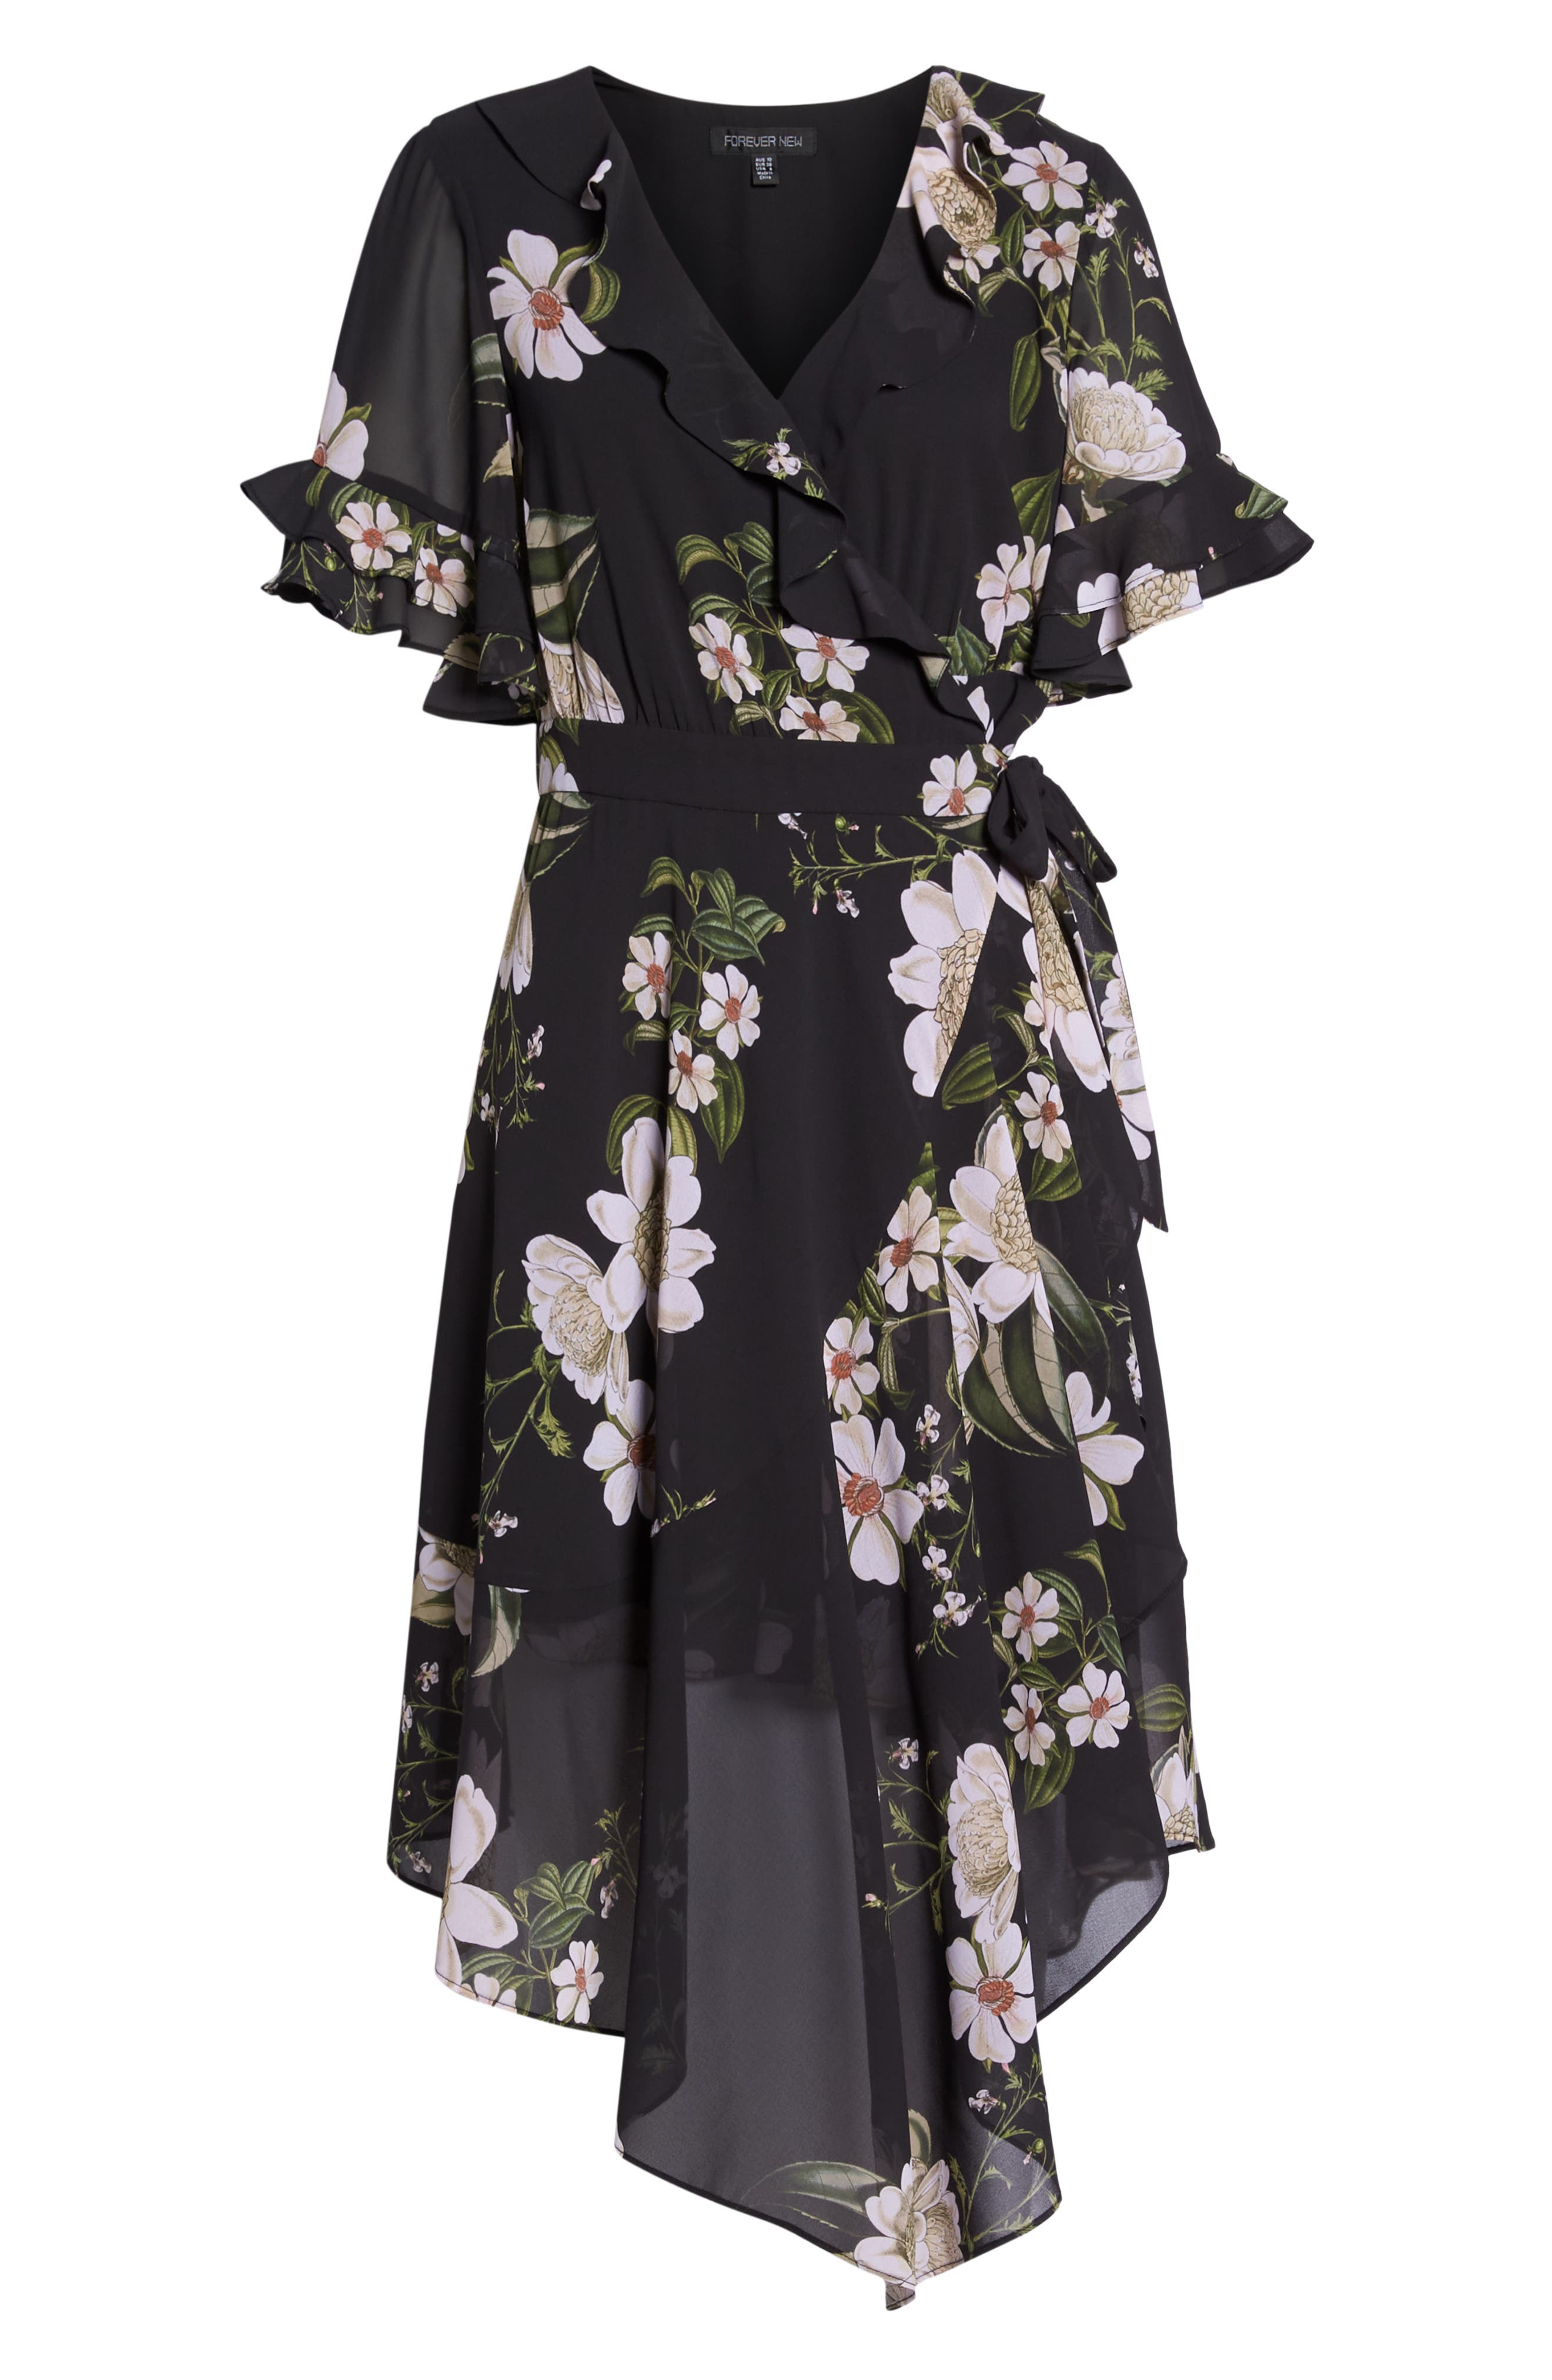 Floral Print Wrap Dress,                             Alternate thumbnail 7, color,                             001